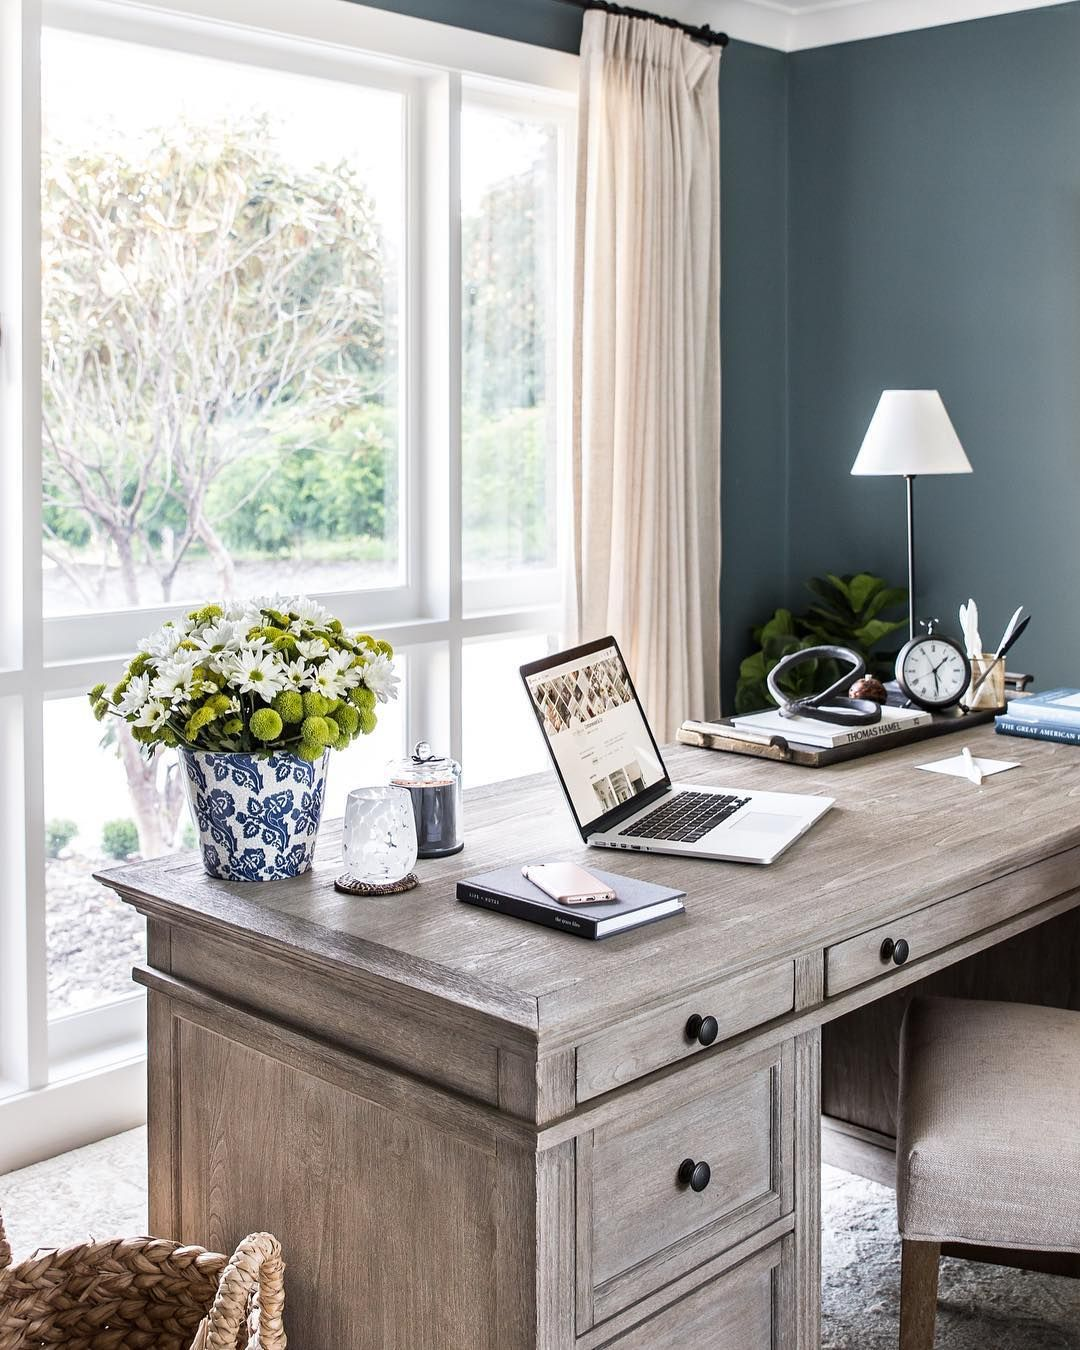 Getting To Work In This Beautiful New Home Office Of Ours